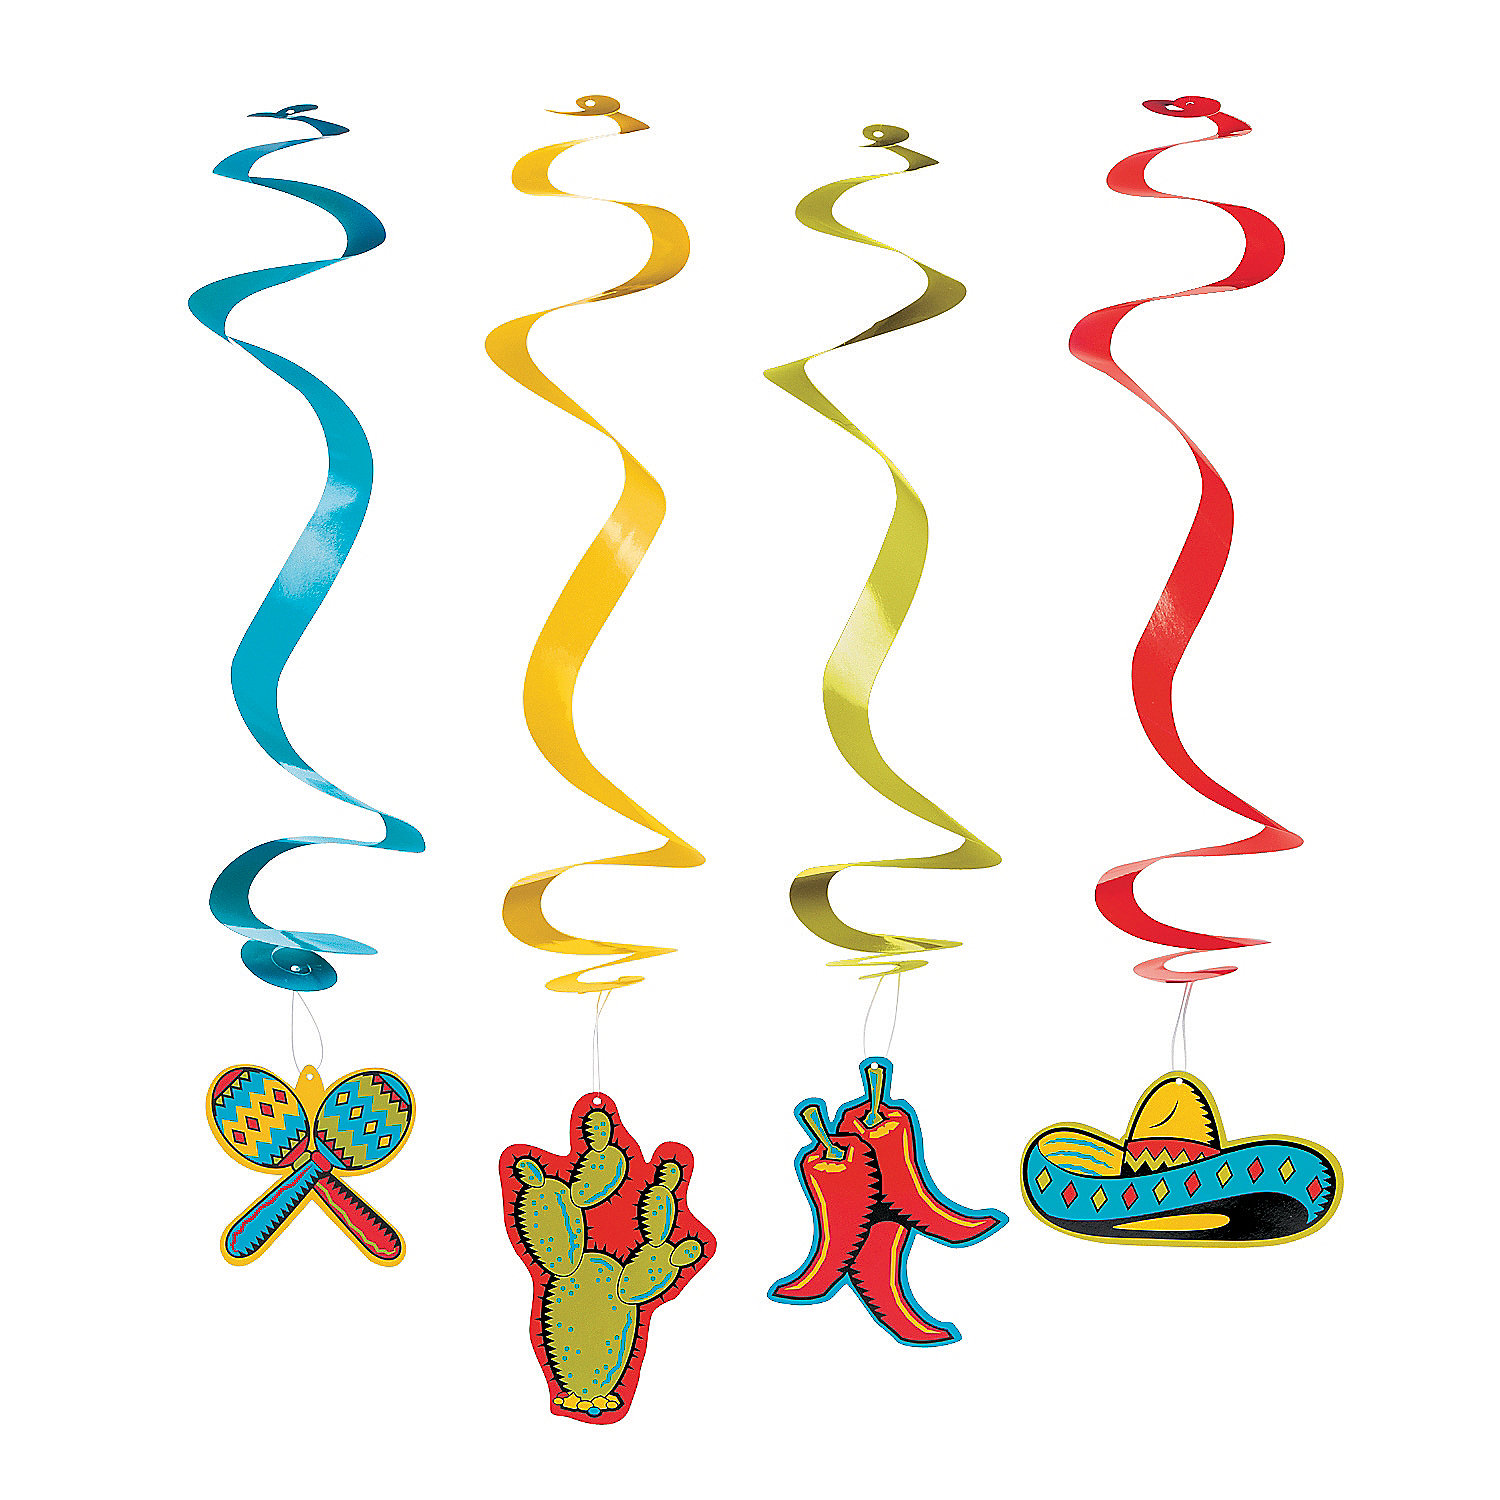 Fun Express - Fiesta Dangling Swirls for Cinco de Mayo - Party Decor - Hanging Decor - Spirals & Swirls - Cinco de Mayo - 12 Pieces